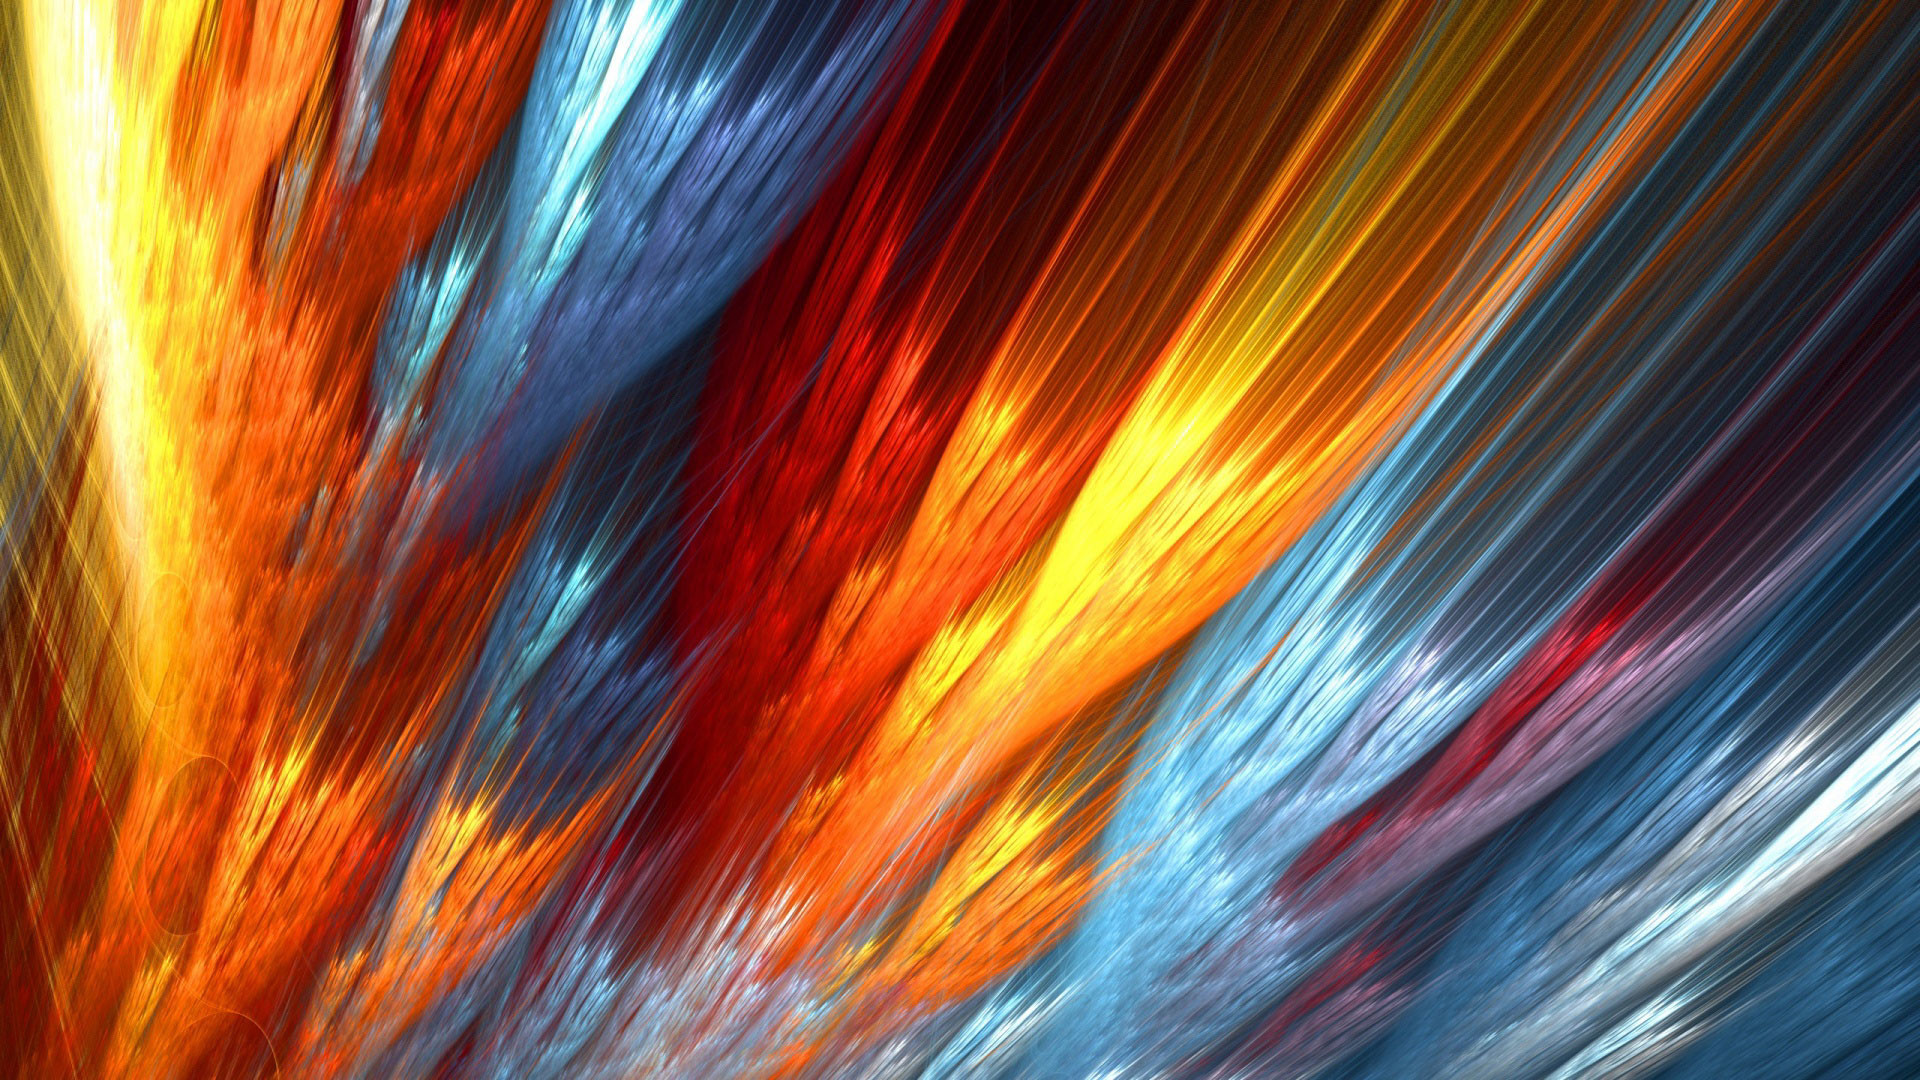 Abstract Water Painting Colors Samsung Galaxy S5 Hd: Color HD Wallpaper (75+ Images